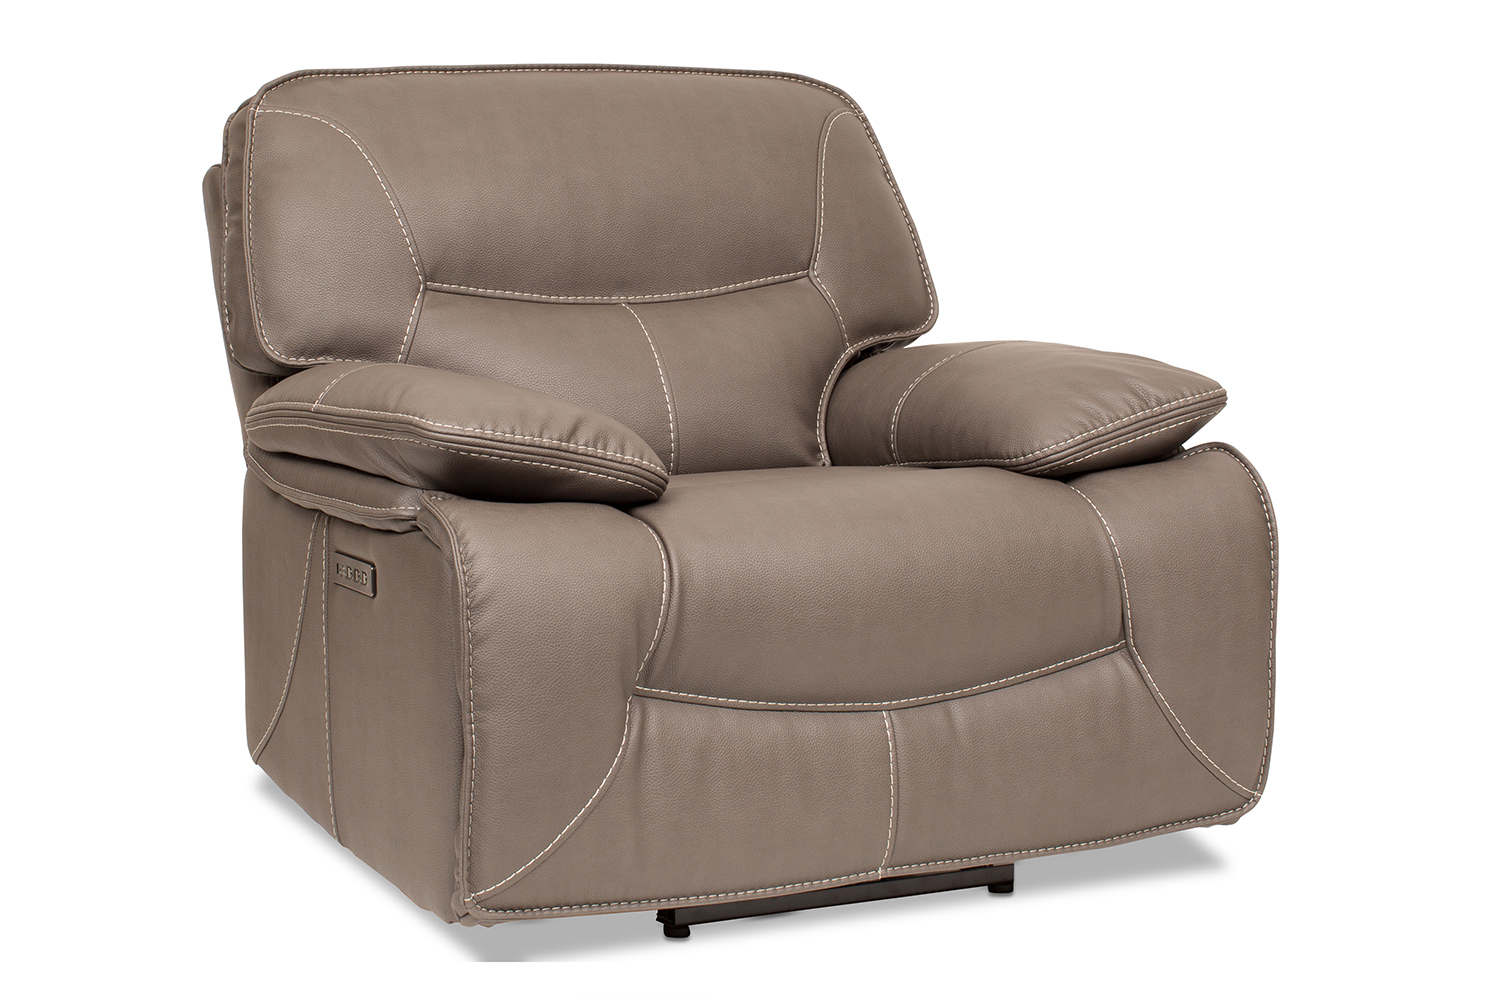 electric recliner sofa not working cheap single chair beds storm ireland